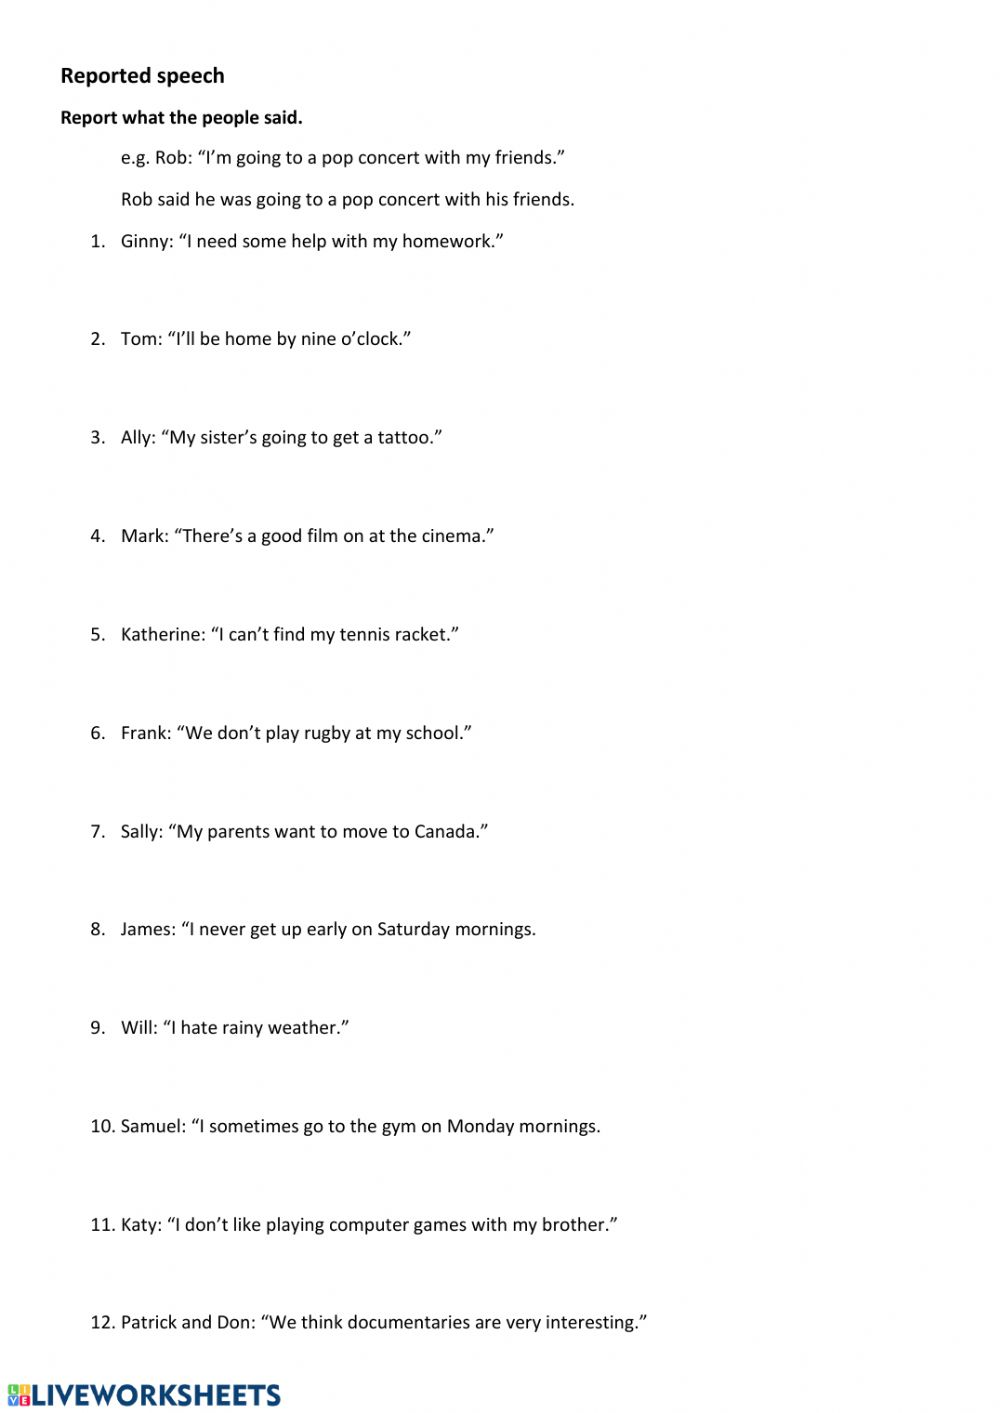 Reported Speech Exercises Worksheet Pdf Reported Speech Online Pdf Exercise For 8